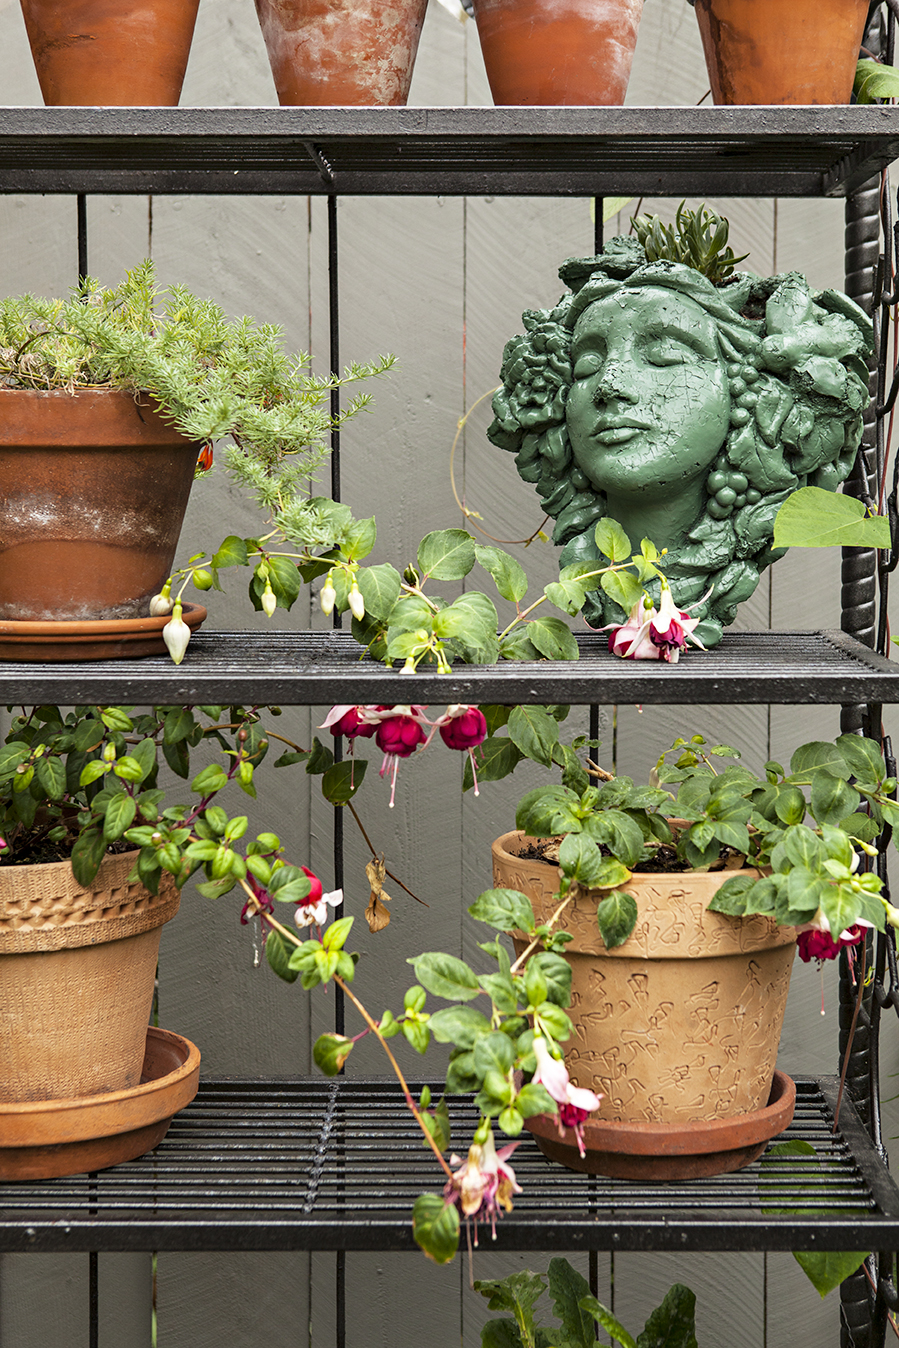 An outdoor shelf decorated with terra cotta pots in bloom.